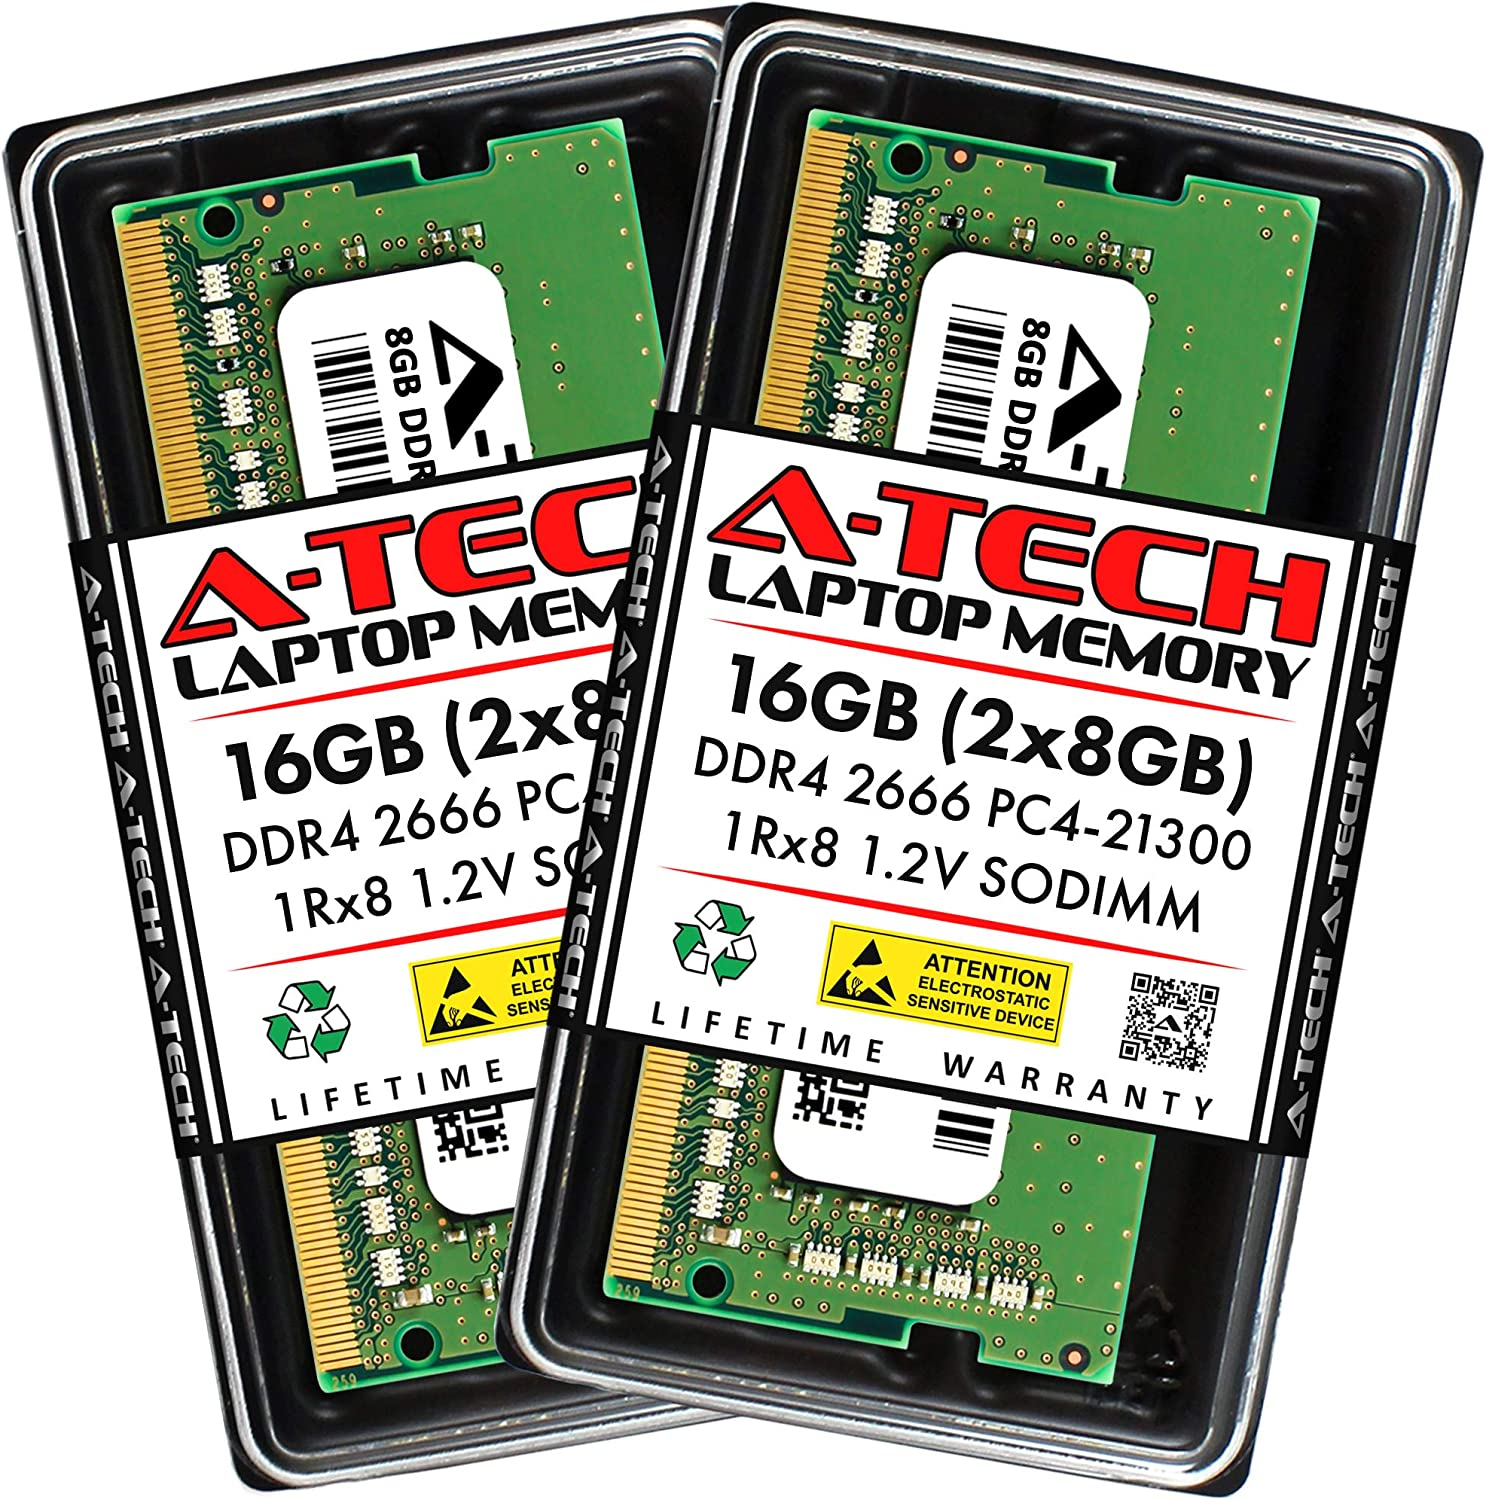 A-Tech 16GB Kit for Intel S2600WTTR Server Memory Ram AT370443SRV-X2R1 2 x 8GB DDR4 PC4-21300 2666Mhz ECC Registered RDIMM 1rx8